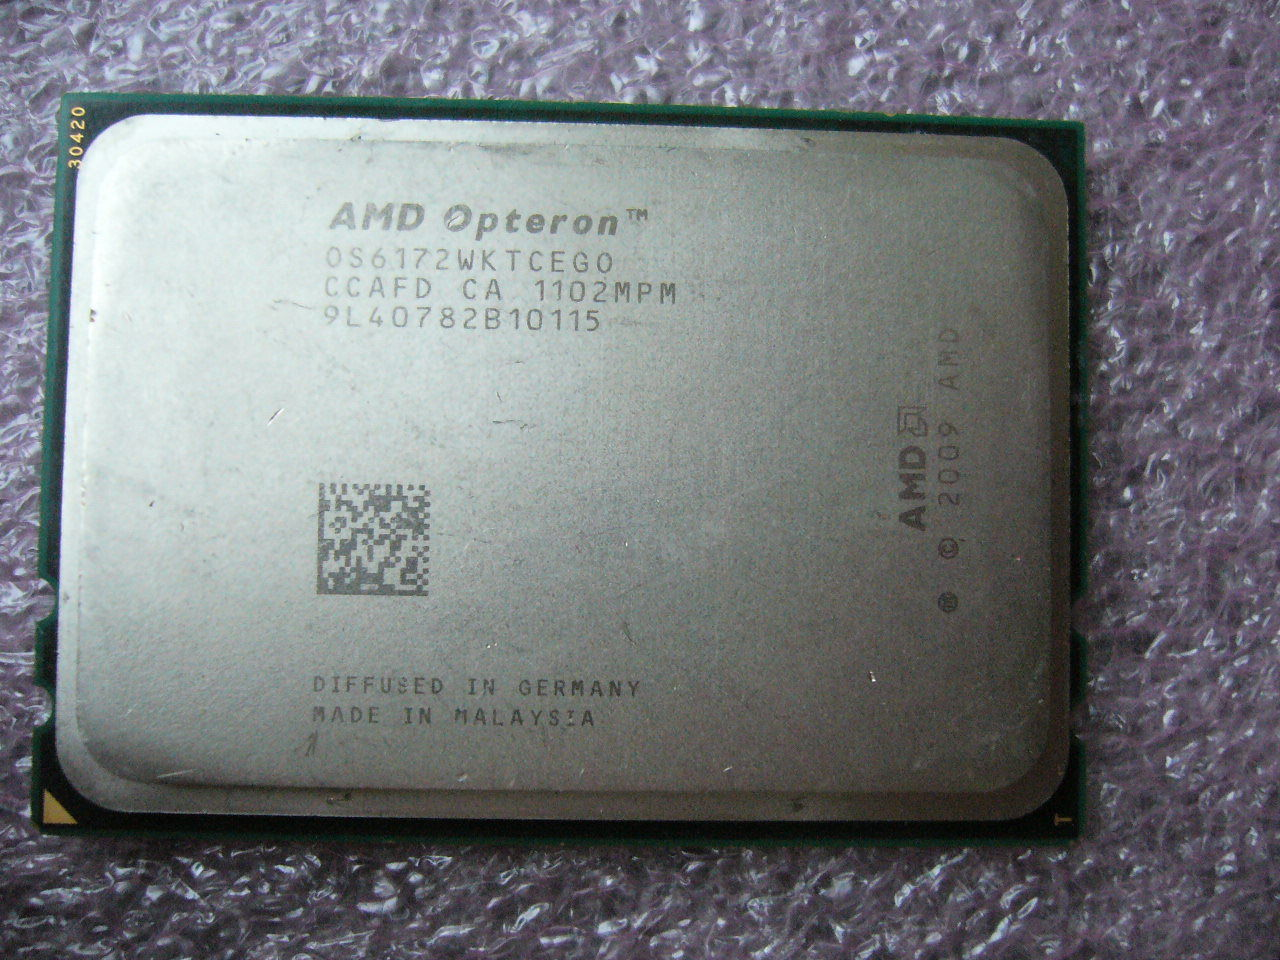 QTY 1x AMD Opteron 6172 2.1 GHz Twelve Core (OS6172WKTCEGO) CPU Tested G34